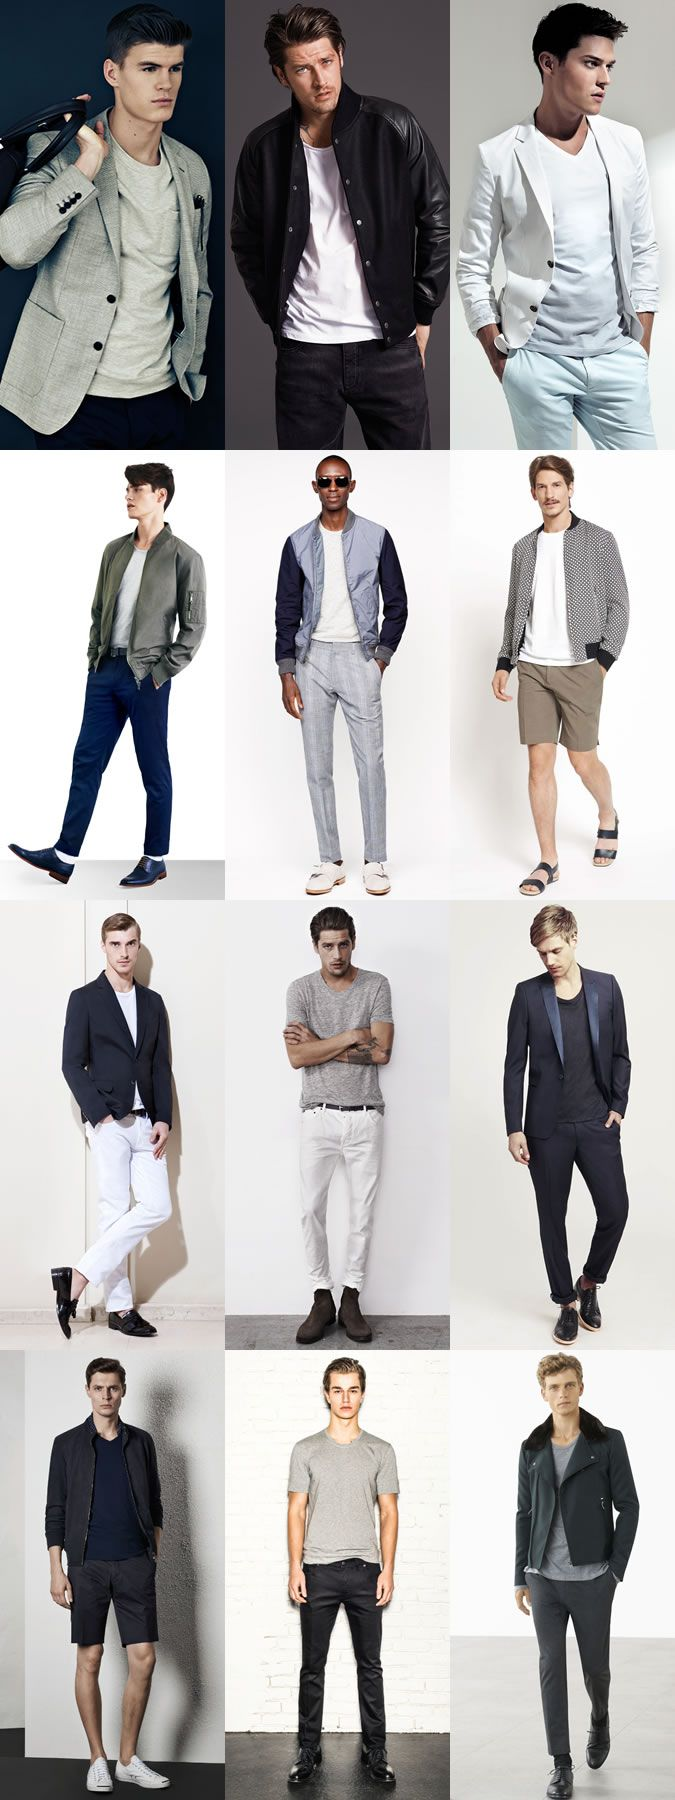 Men's Basic Neutral T-Shirts Outfit Inspiration Lookbook